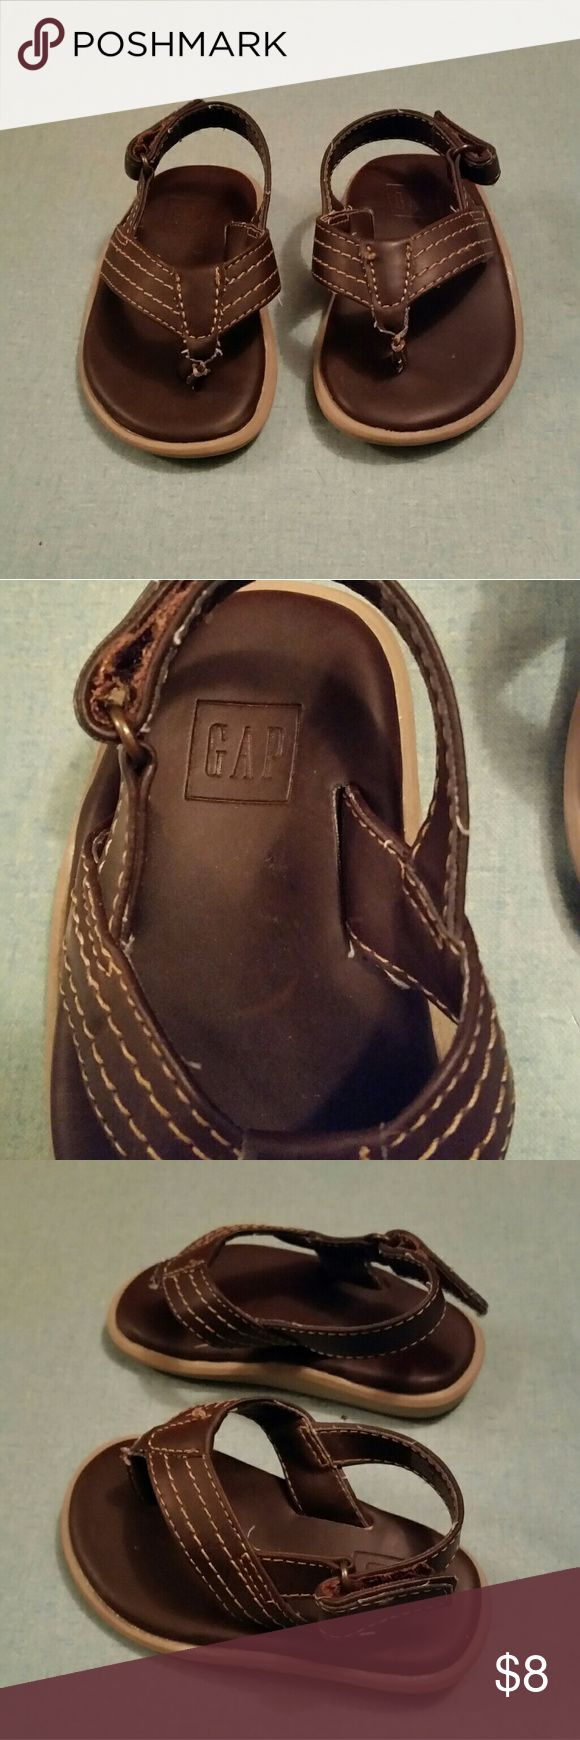 Gap Toddler Brown Leather Flip Flop Very comfortable Gap, Brown leather flip flop sandal for boys Easy to fasten and go with velcro Size from tip of toe to heel is 5 1/2 inches long Size 5/6 T GAP Shoes Sandals & Flip Flops